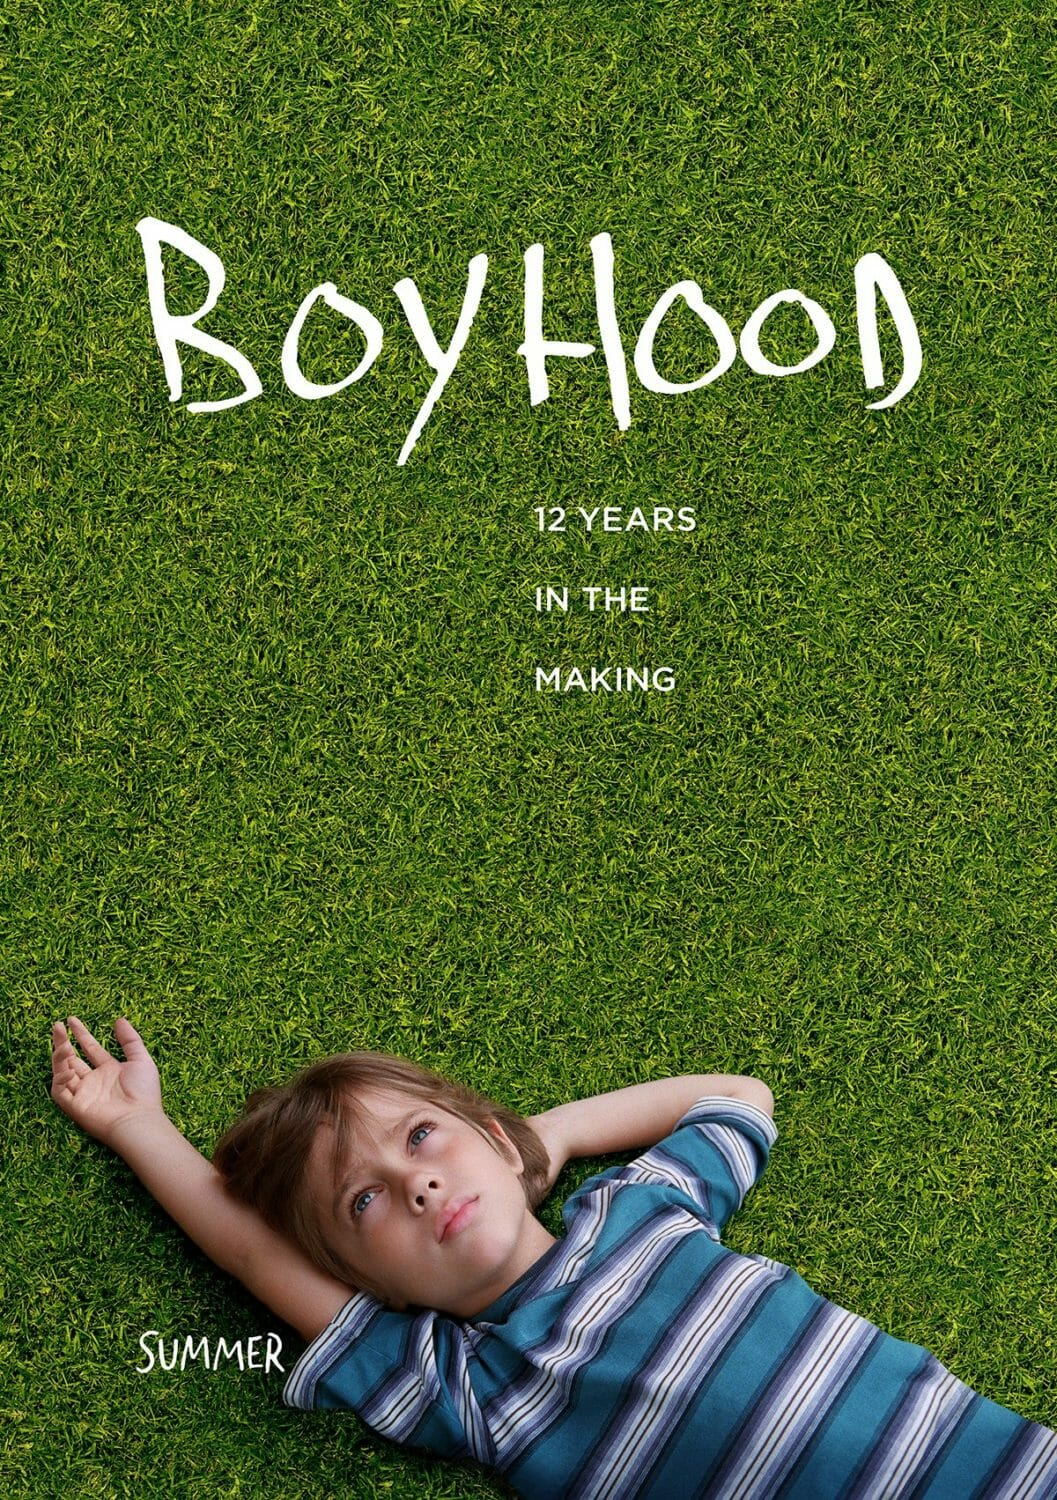 The top five feature films of 2014 - Boy Hood